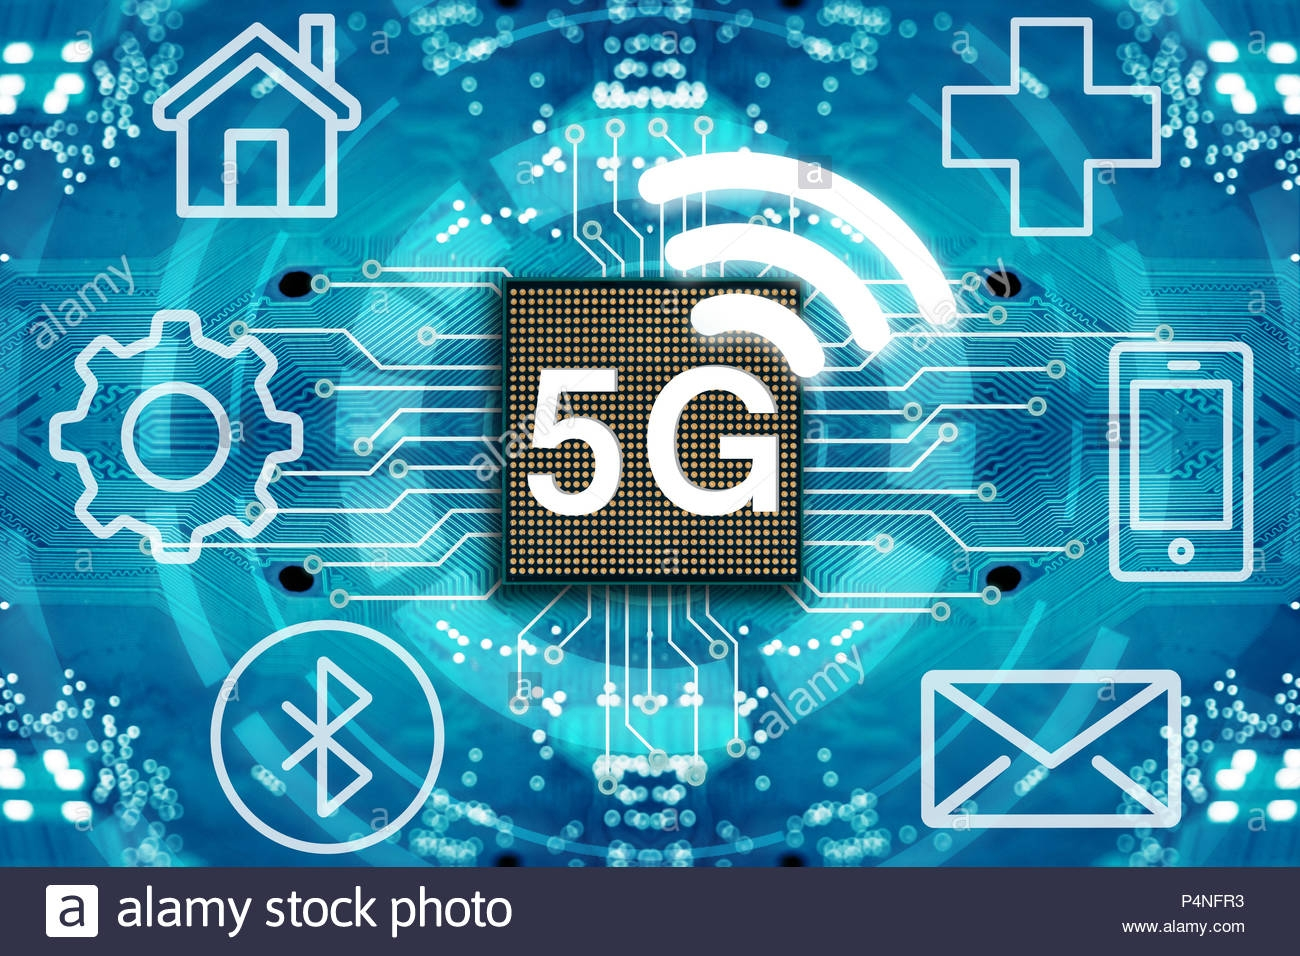 The 5G Technology